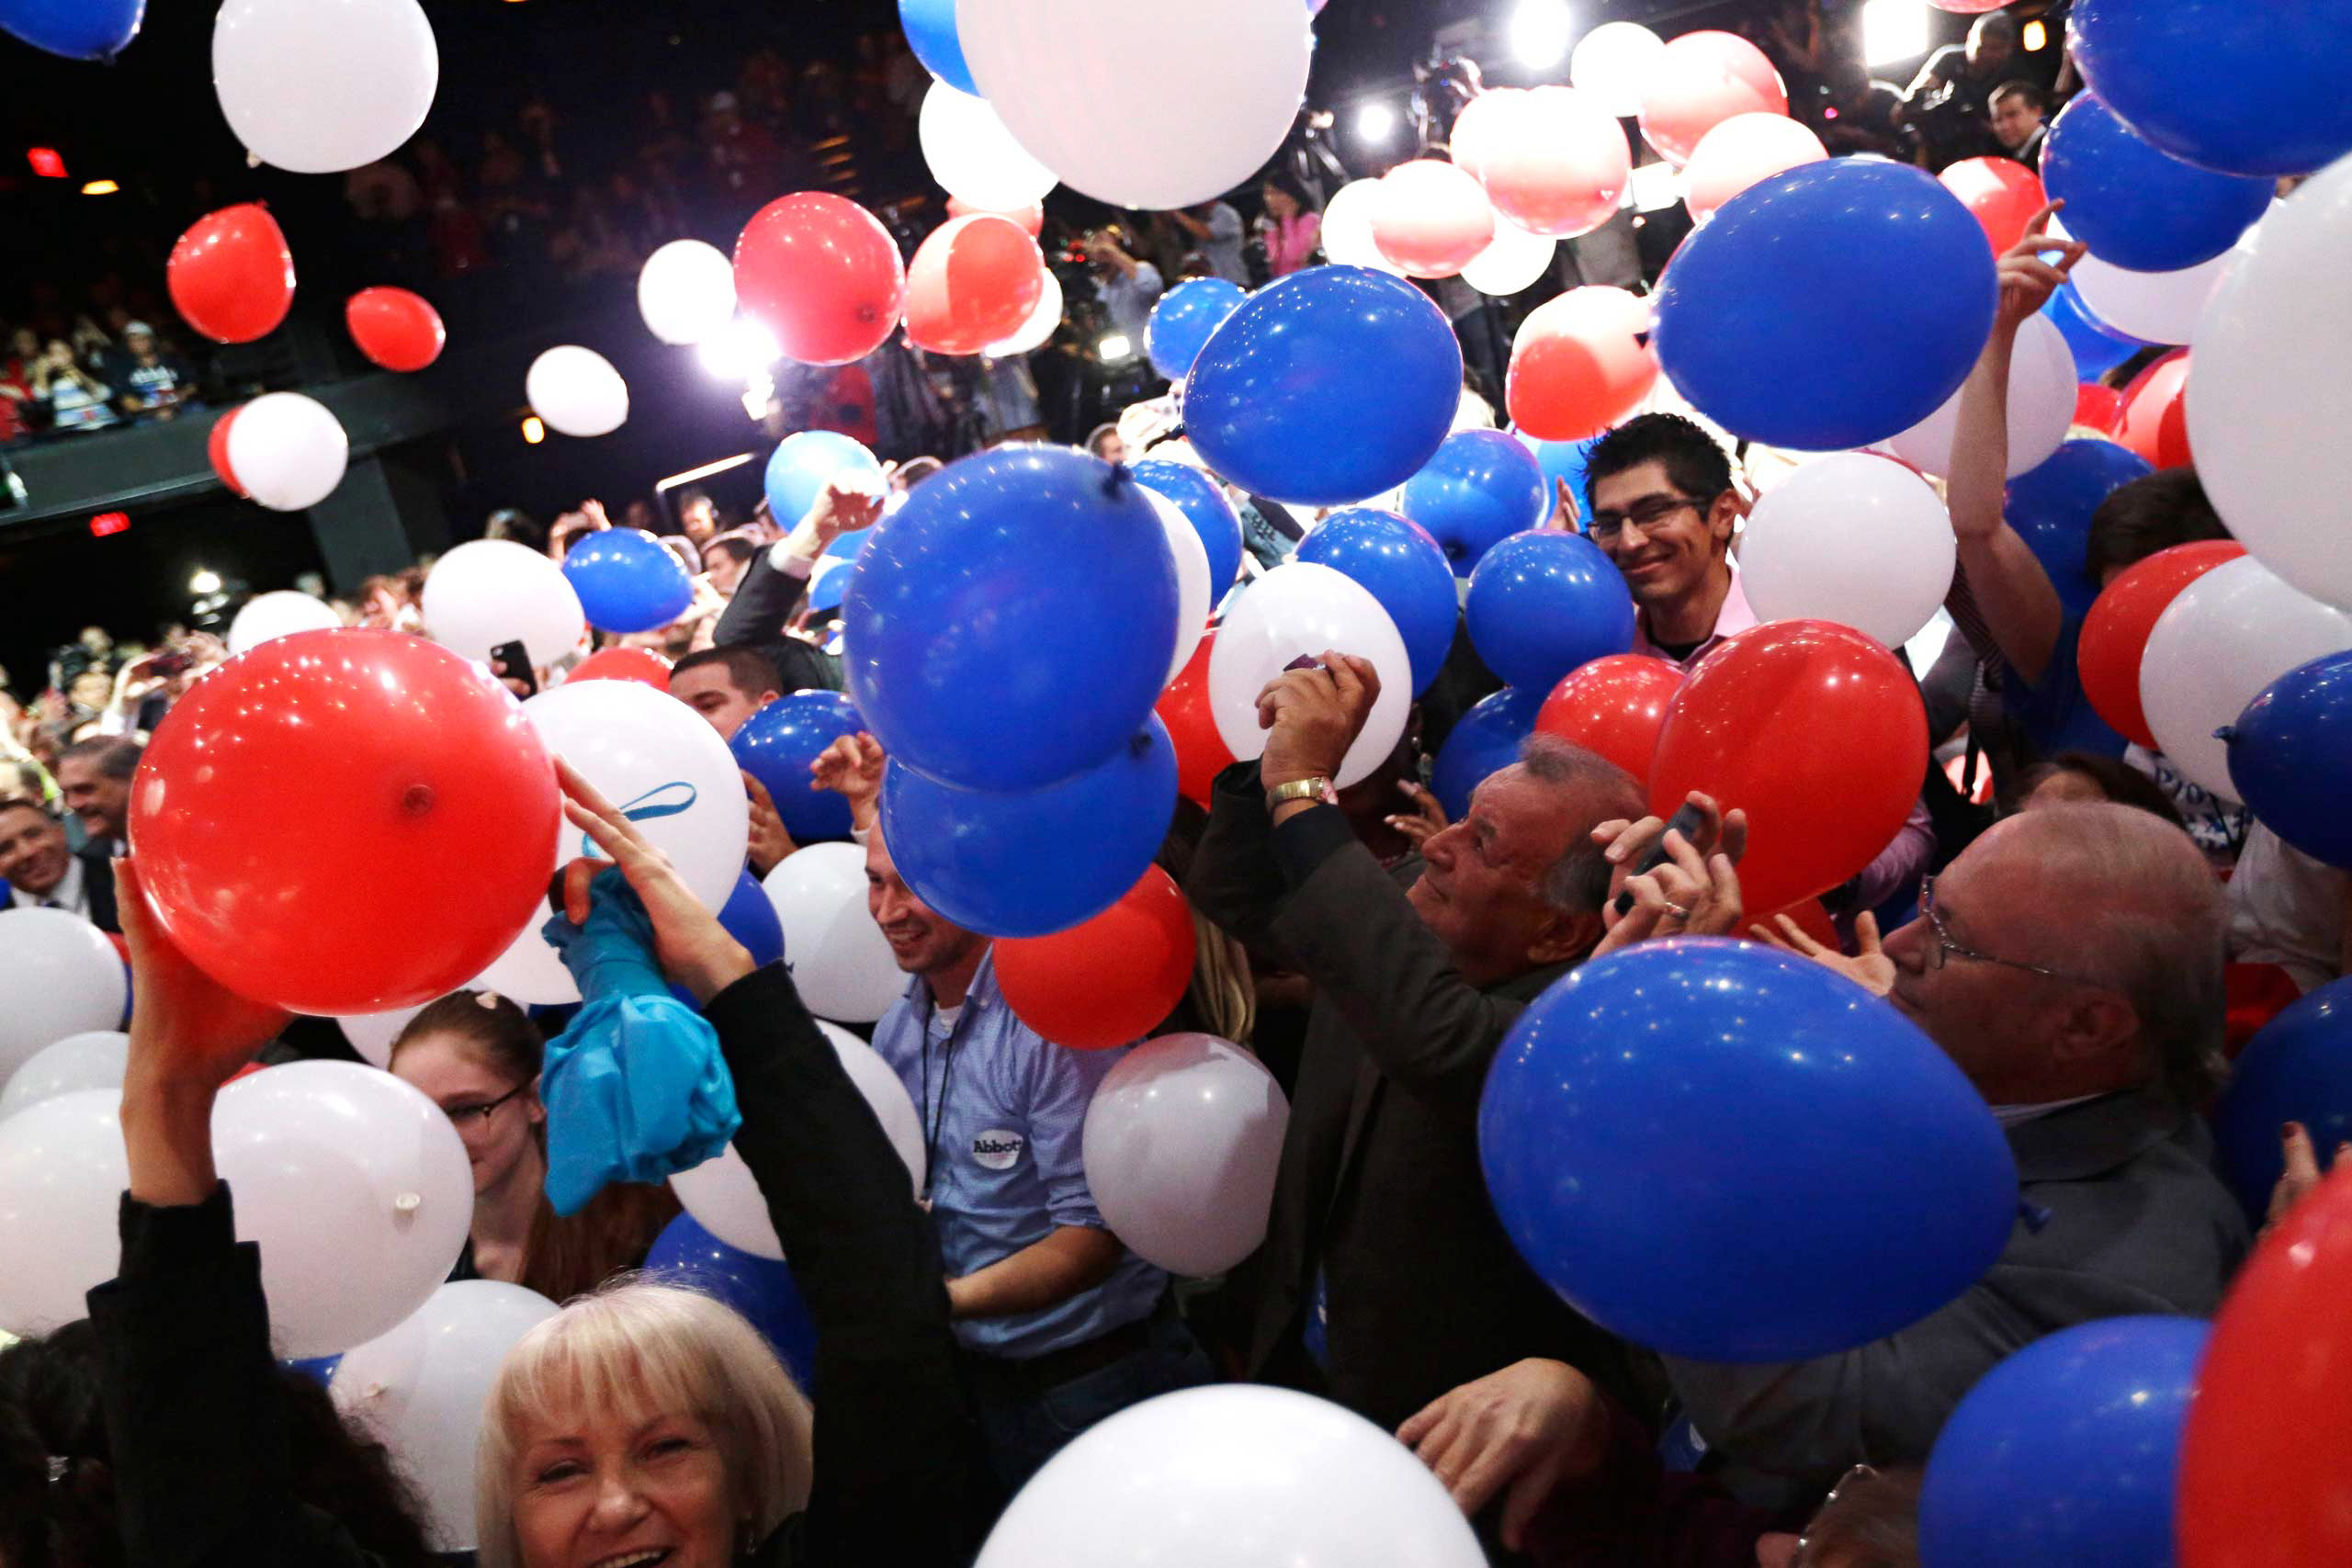 Supporters cheer as balloons fall after Texas Attorney General and Republican candidate for governor Greg Abbott's victory speech in Austin on Nov. 4, 2014.